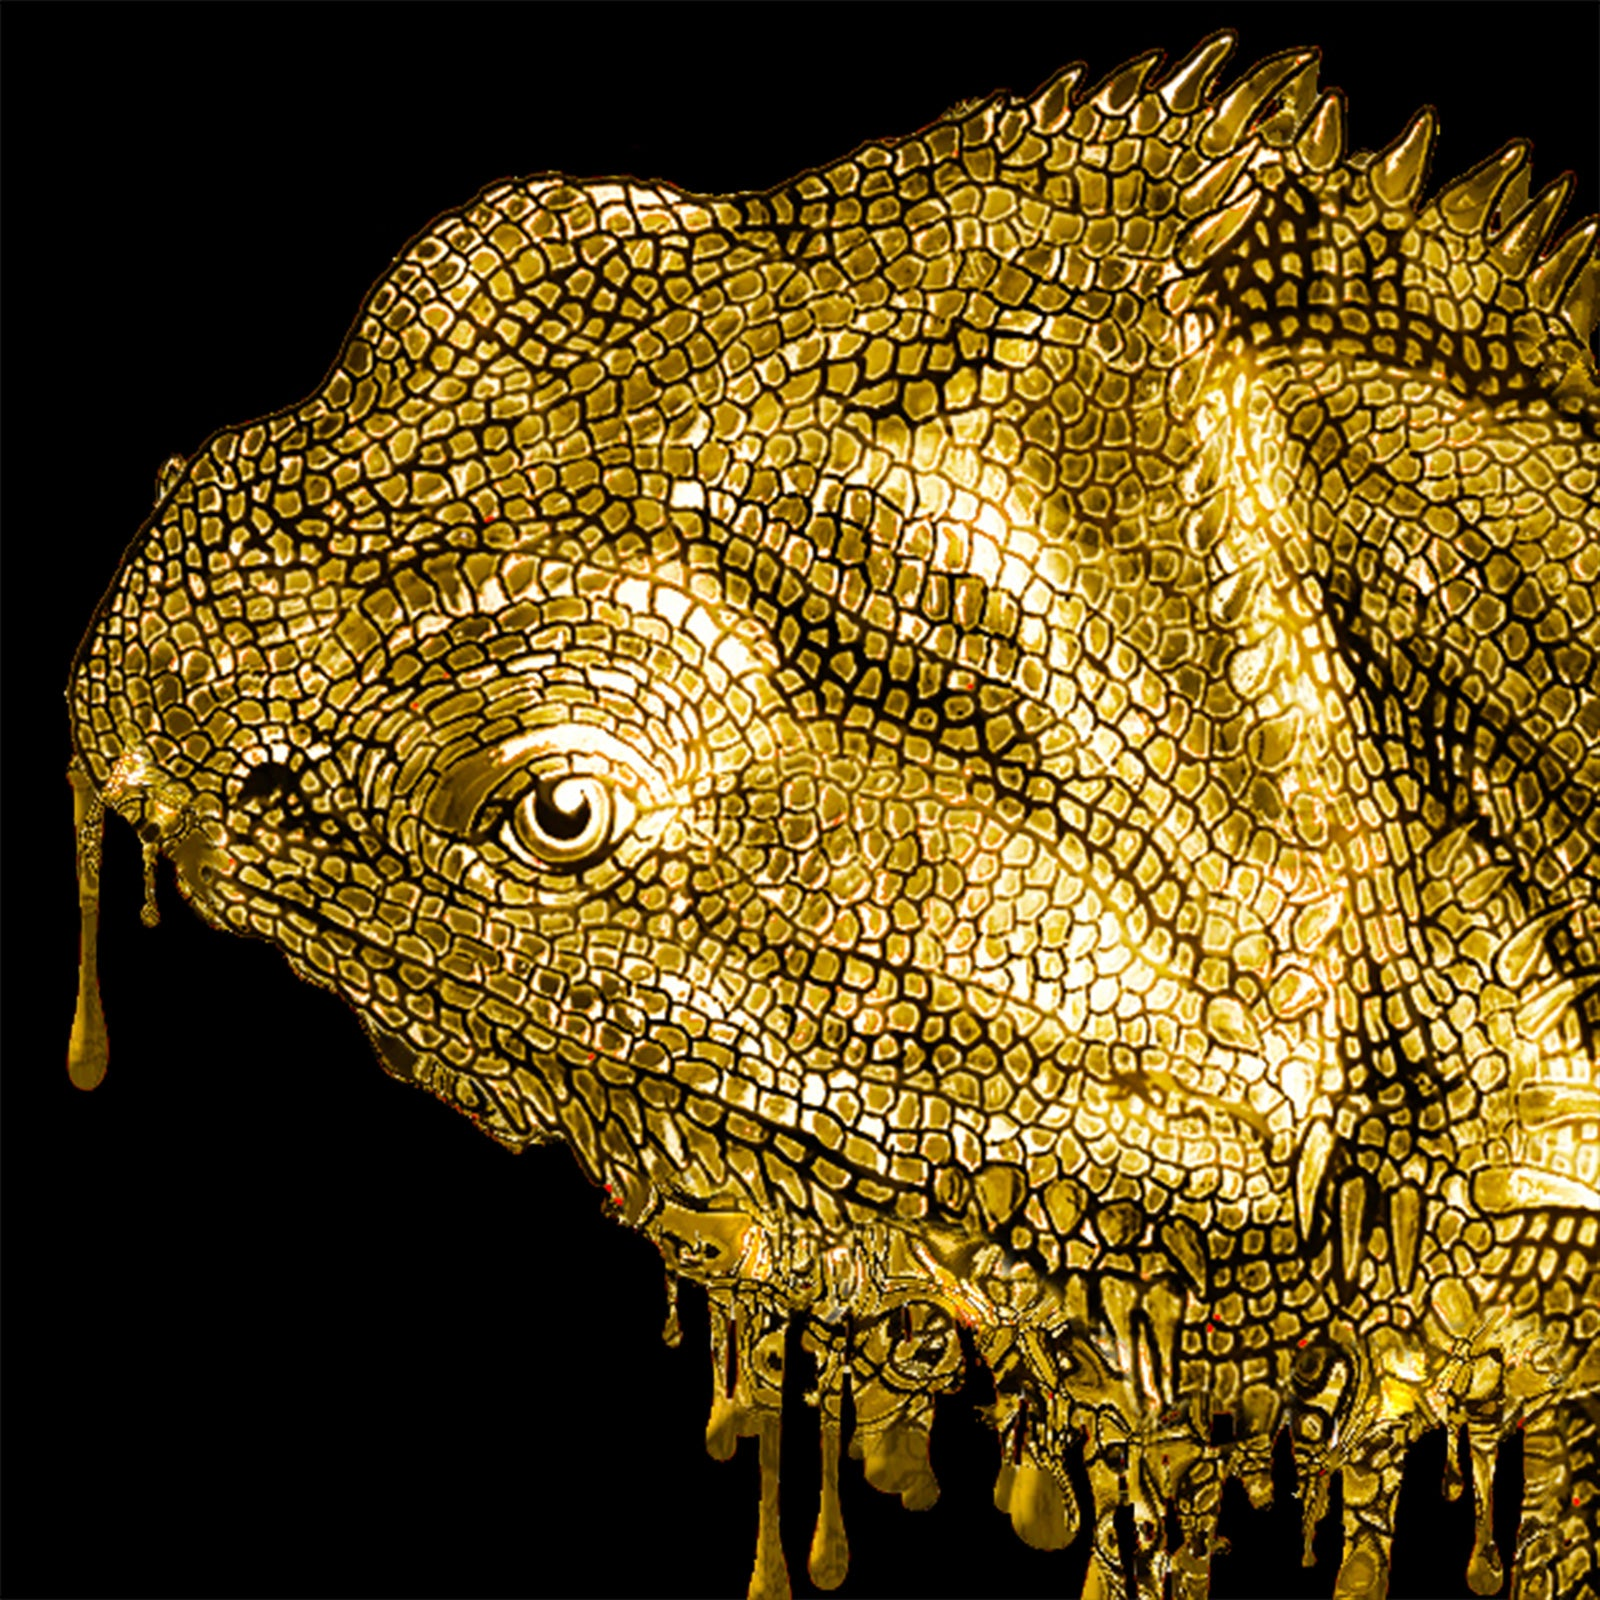 Dripping Gold Lizard - Ultimate Quality